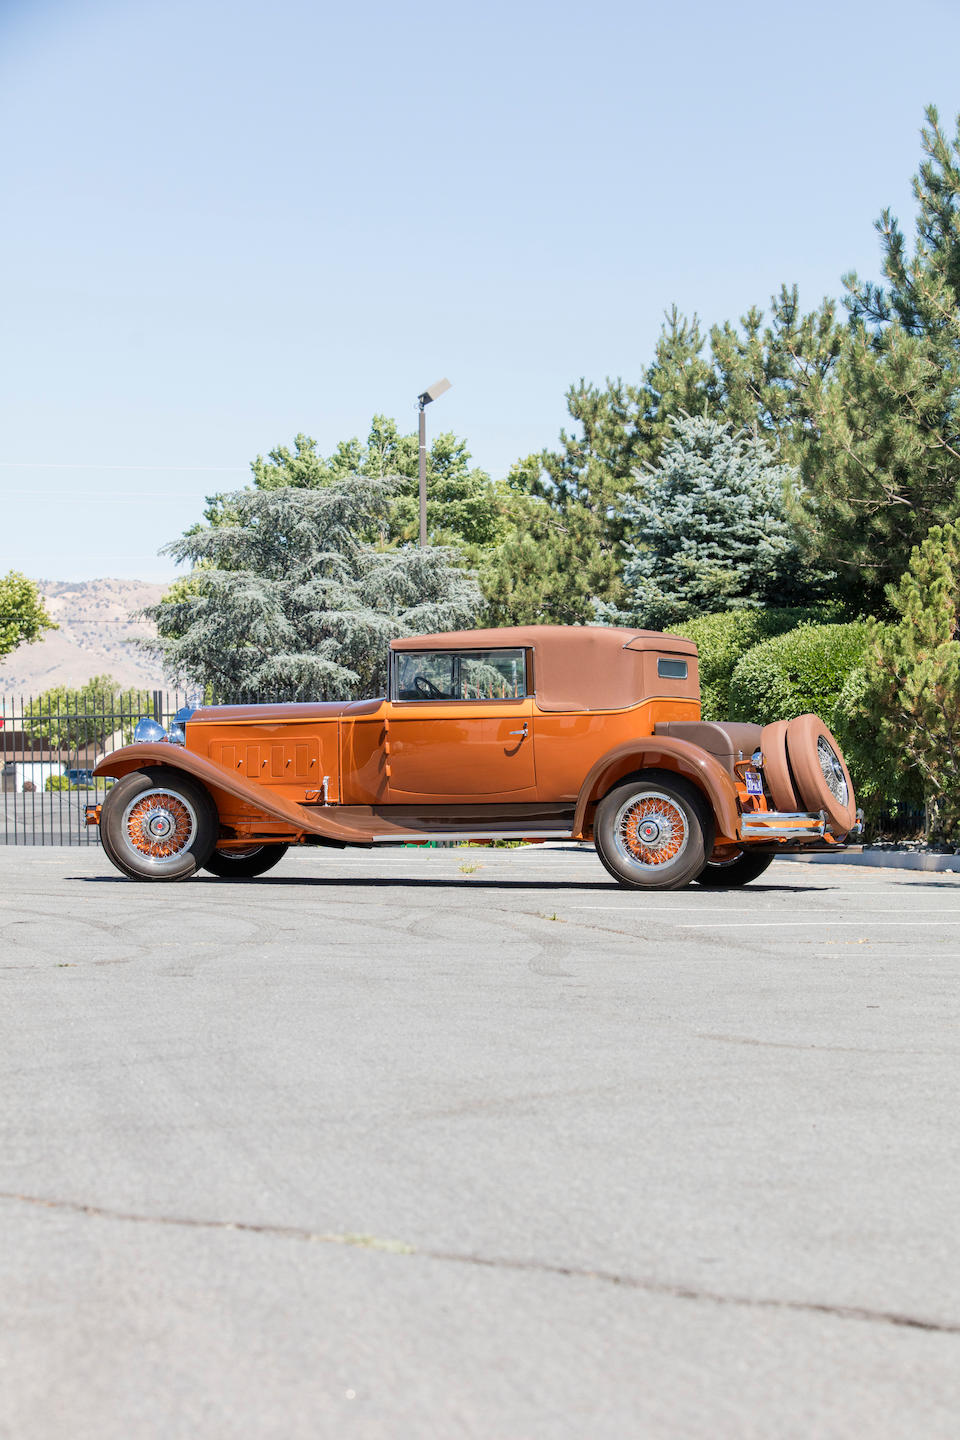 <b>1930 Packard Deluxe Eight 745 Convertible Victoria</b><br /> Chassis no. 179019/179021